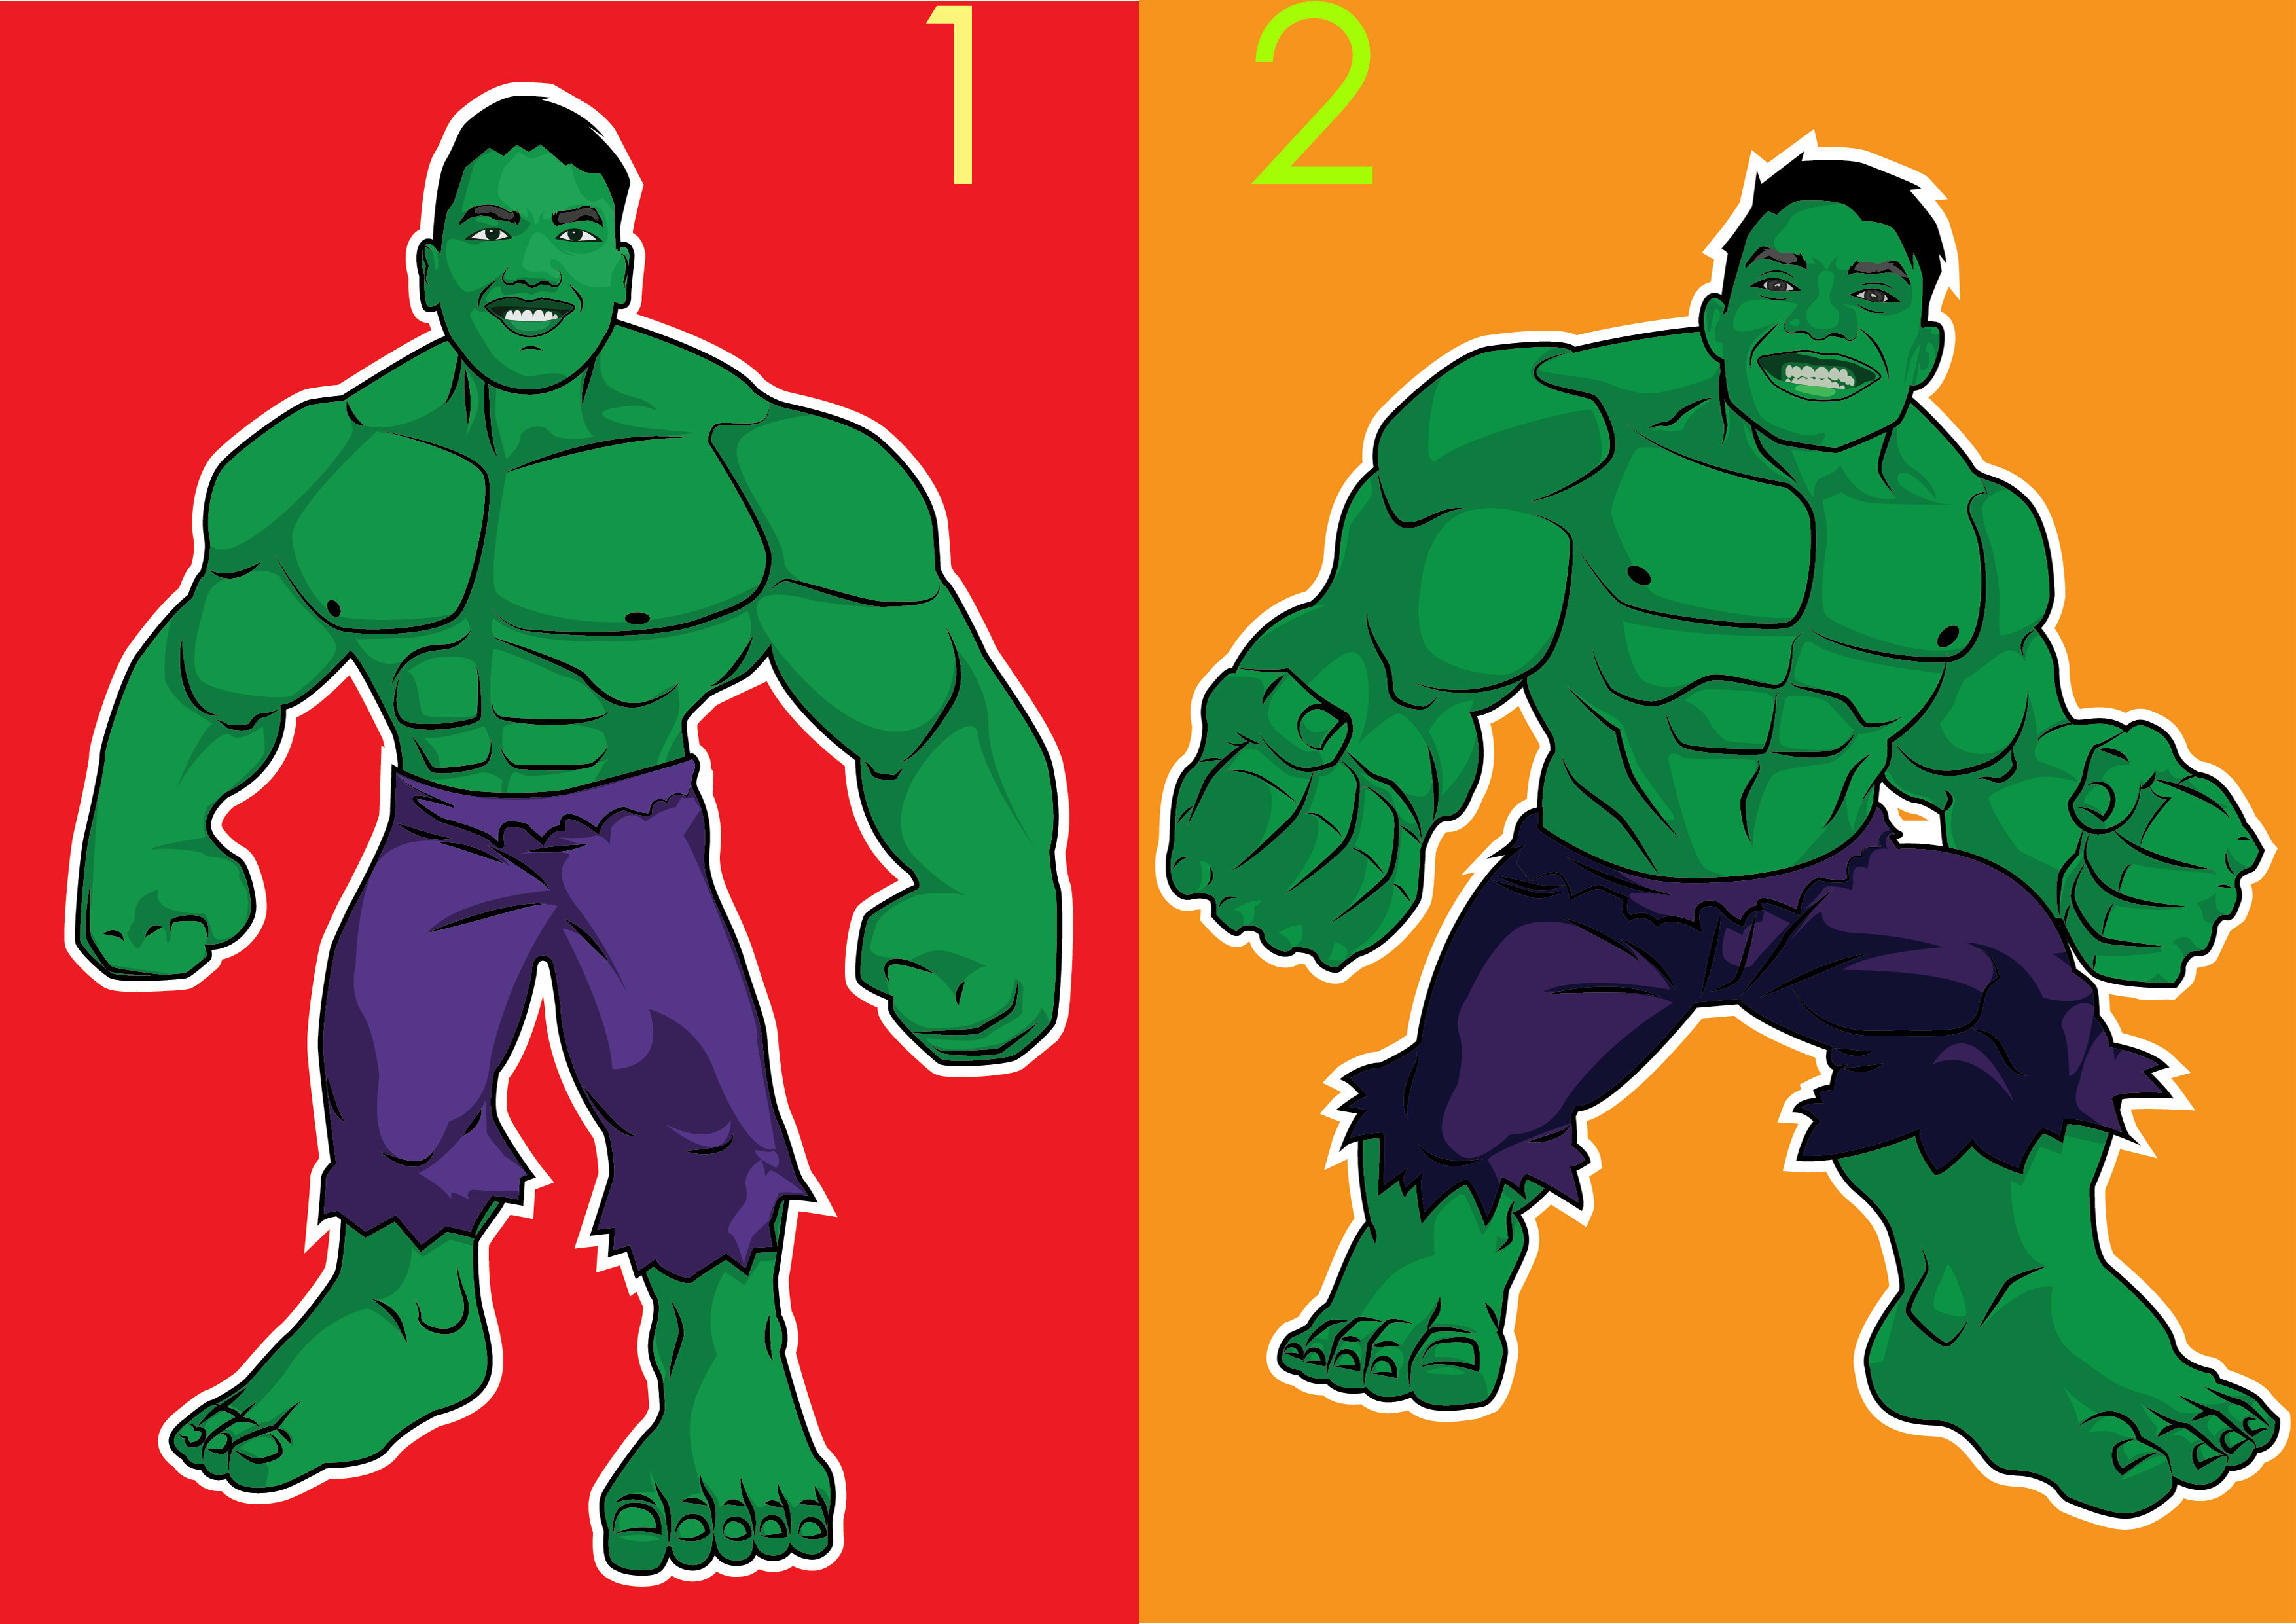 Draw Your Cartoon Become Hulk By Hindun Fiverr Follow along with us, and don't worry about making your drawing look exactly like ours. draw your cartoon become hulk by hindun